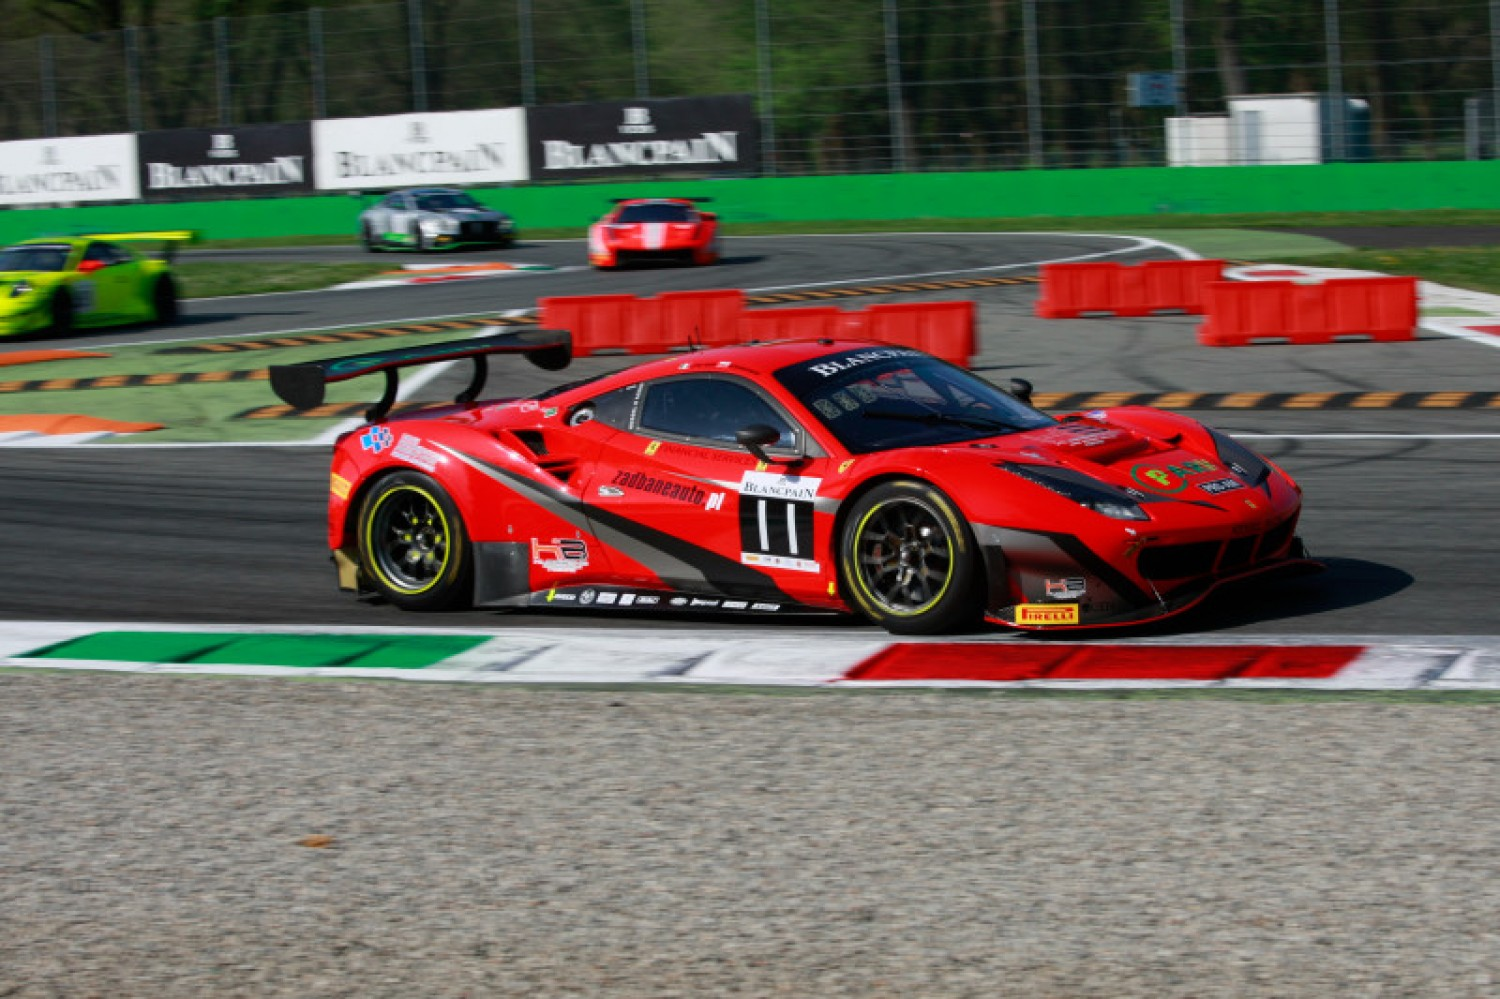 Kessel Racing put Ferrari on top in free practice at Monza